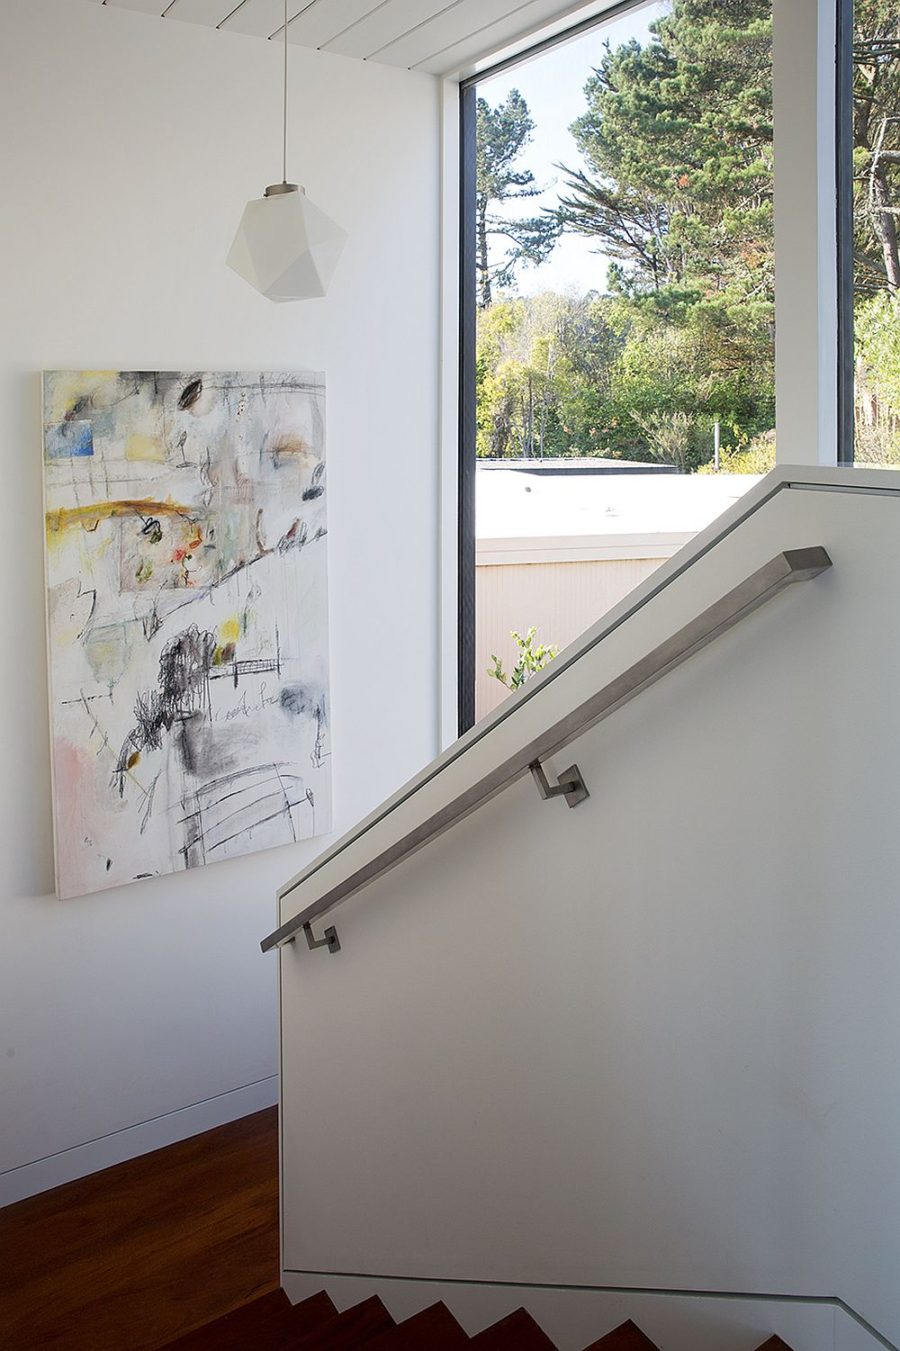 Staircase block overlooks the inner courtyard and features an artwork